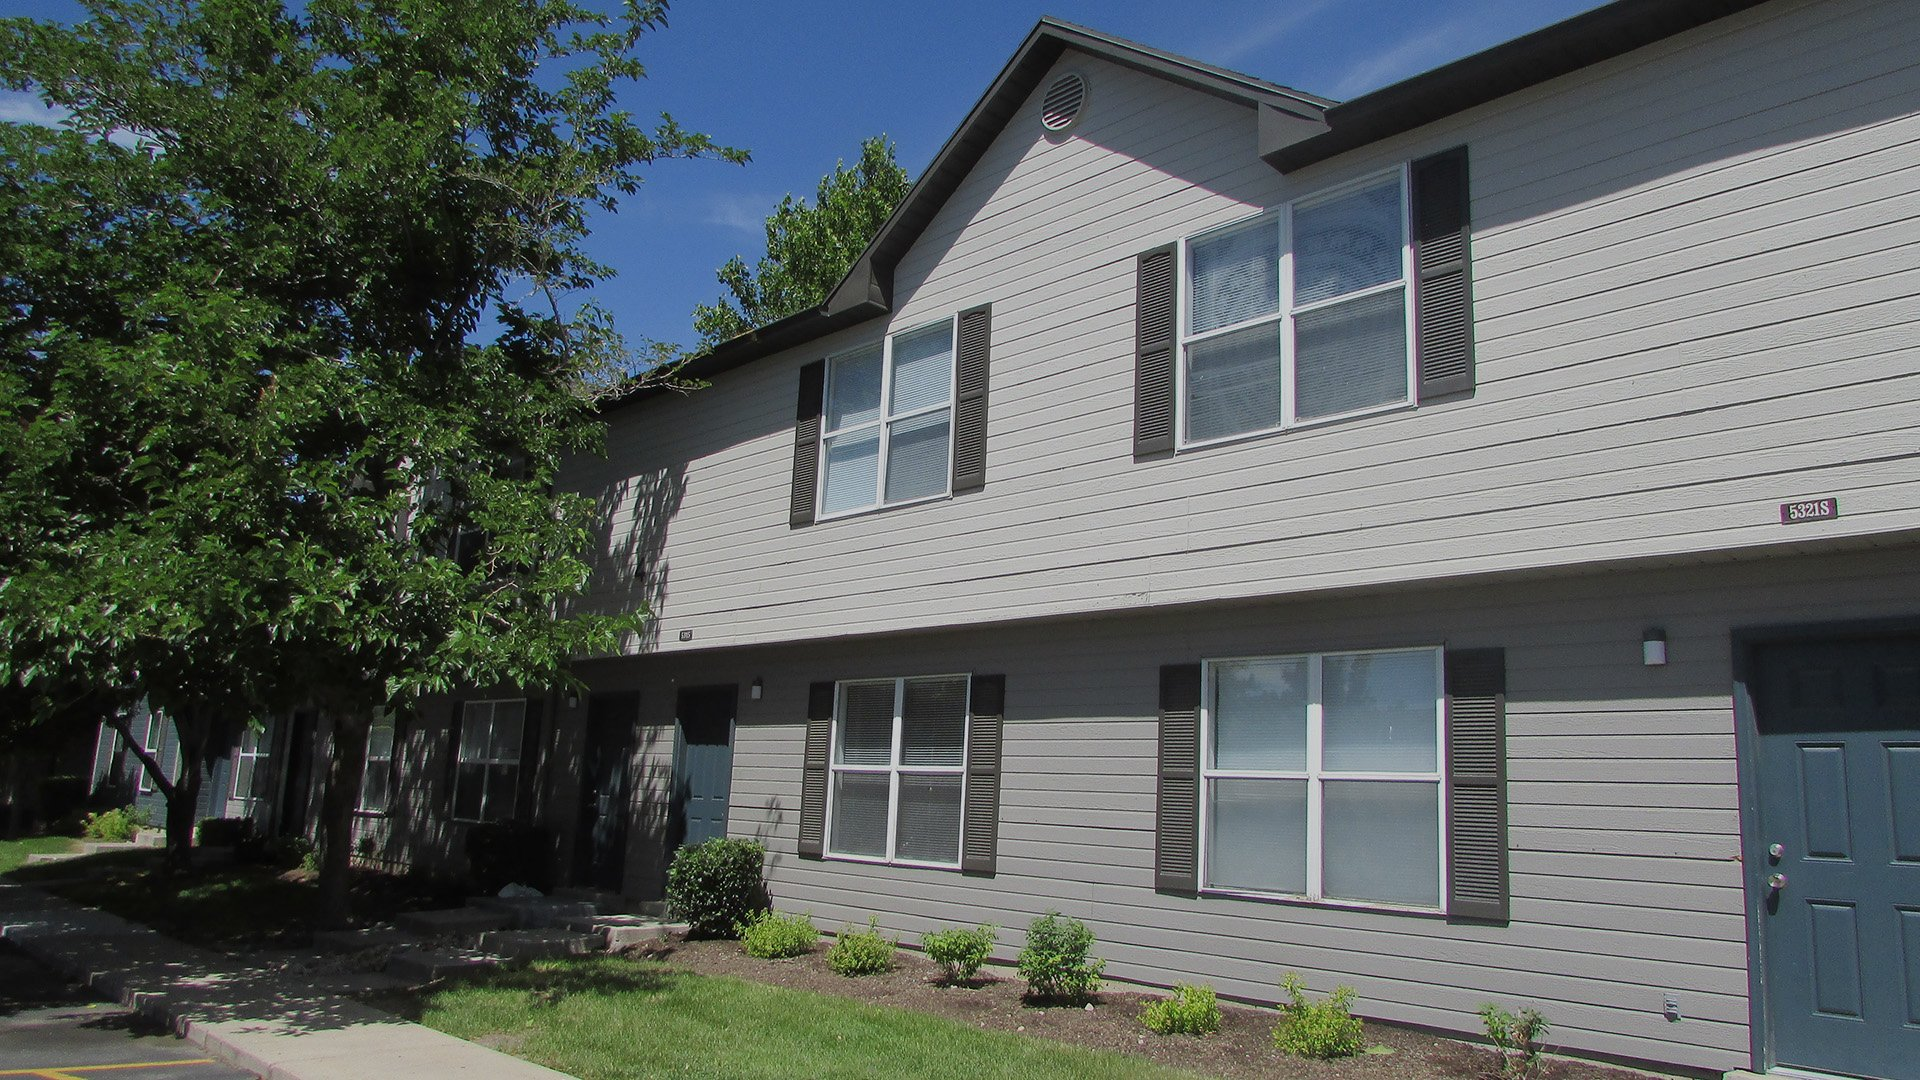 Taylorsville Apartments